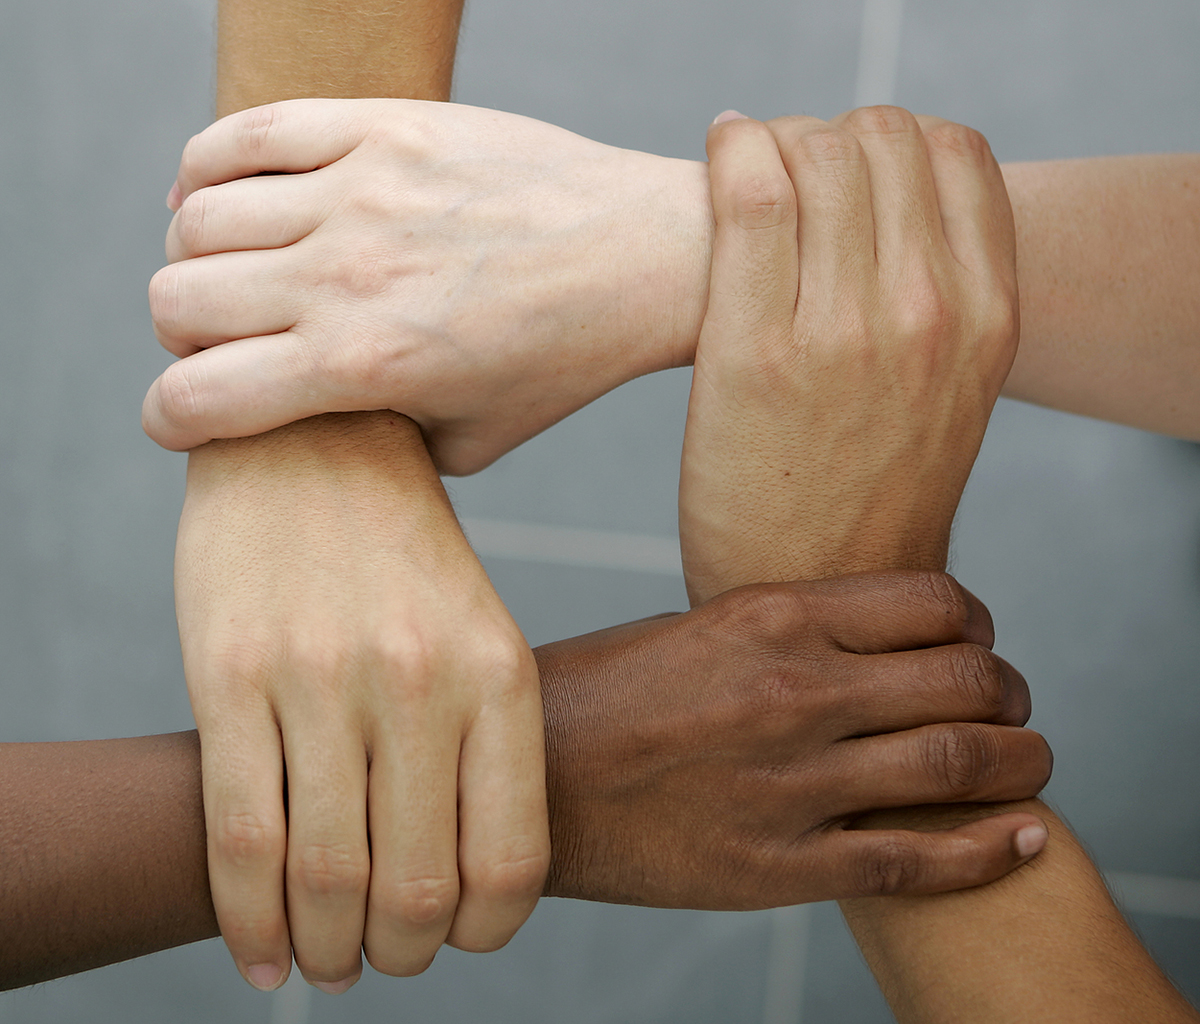 Four hands of people of varying skin tones joining together by holding onto the wrist of the hand in front of it.